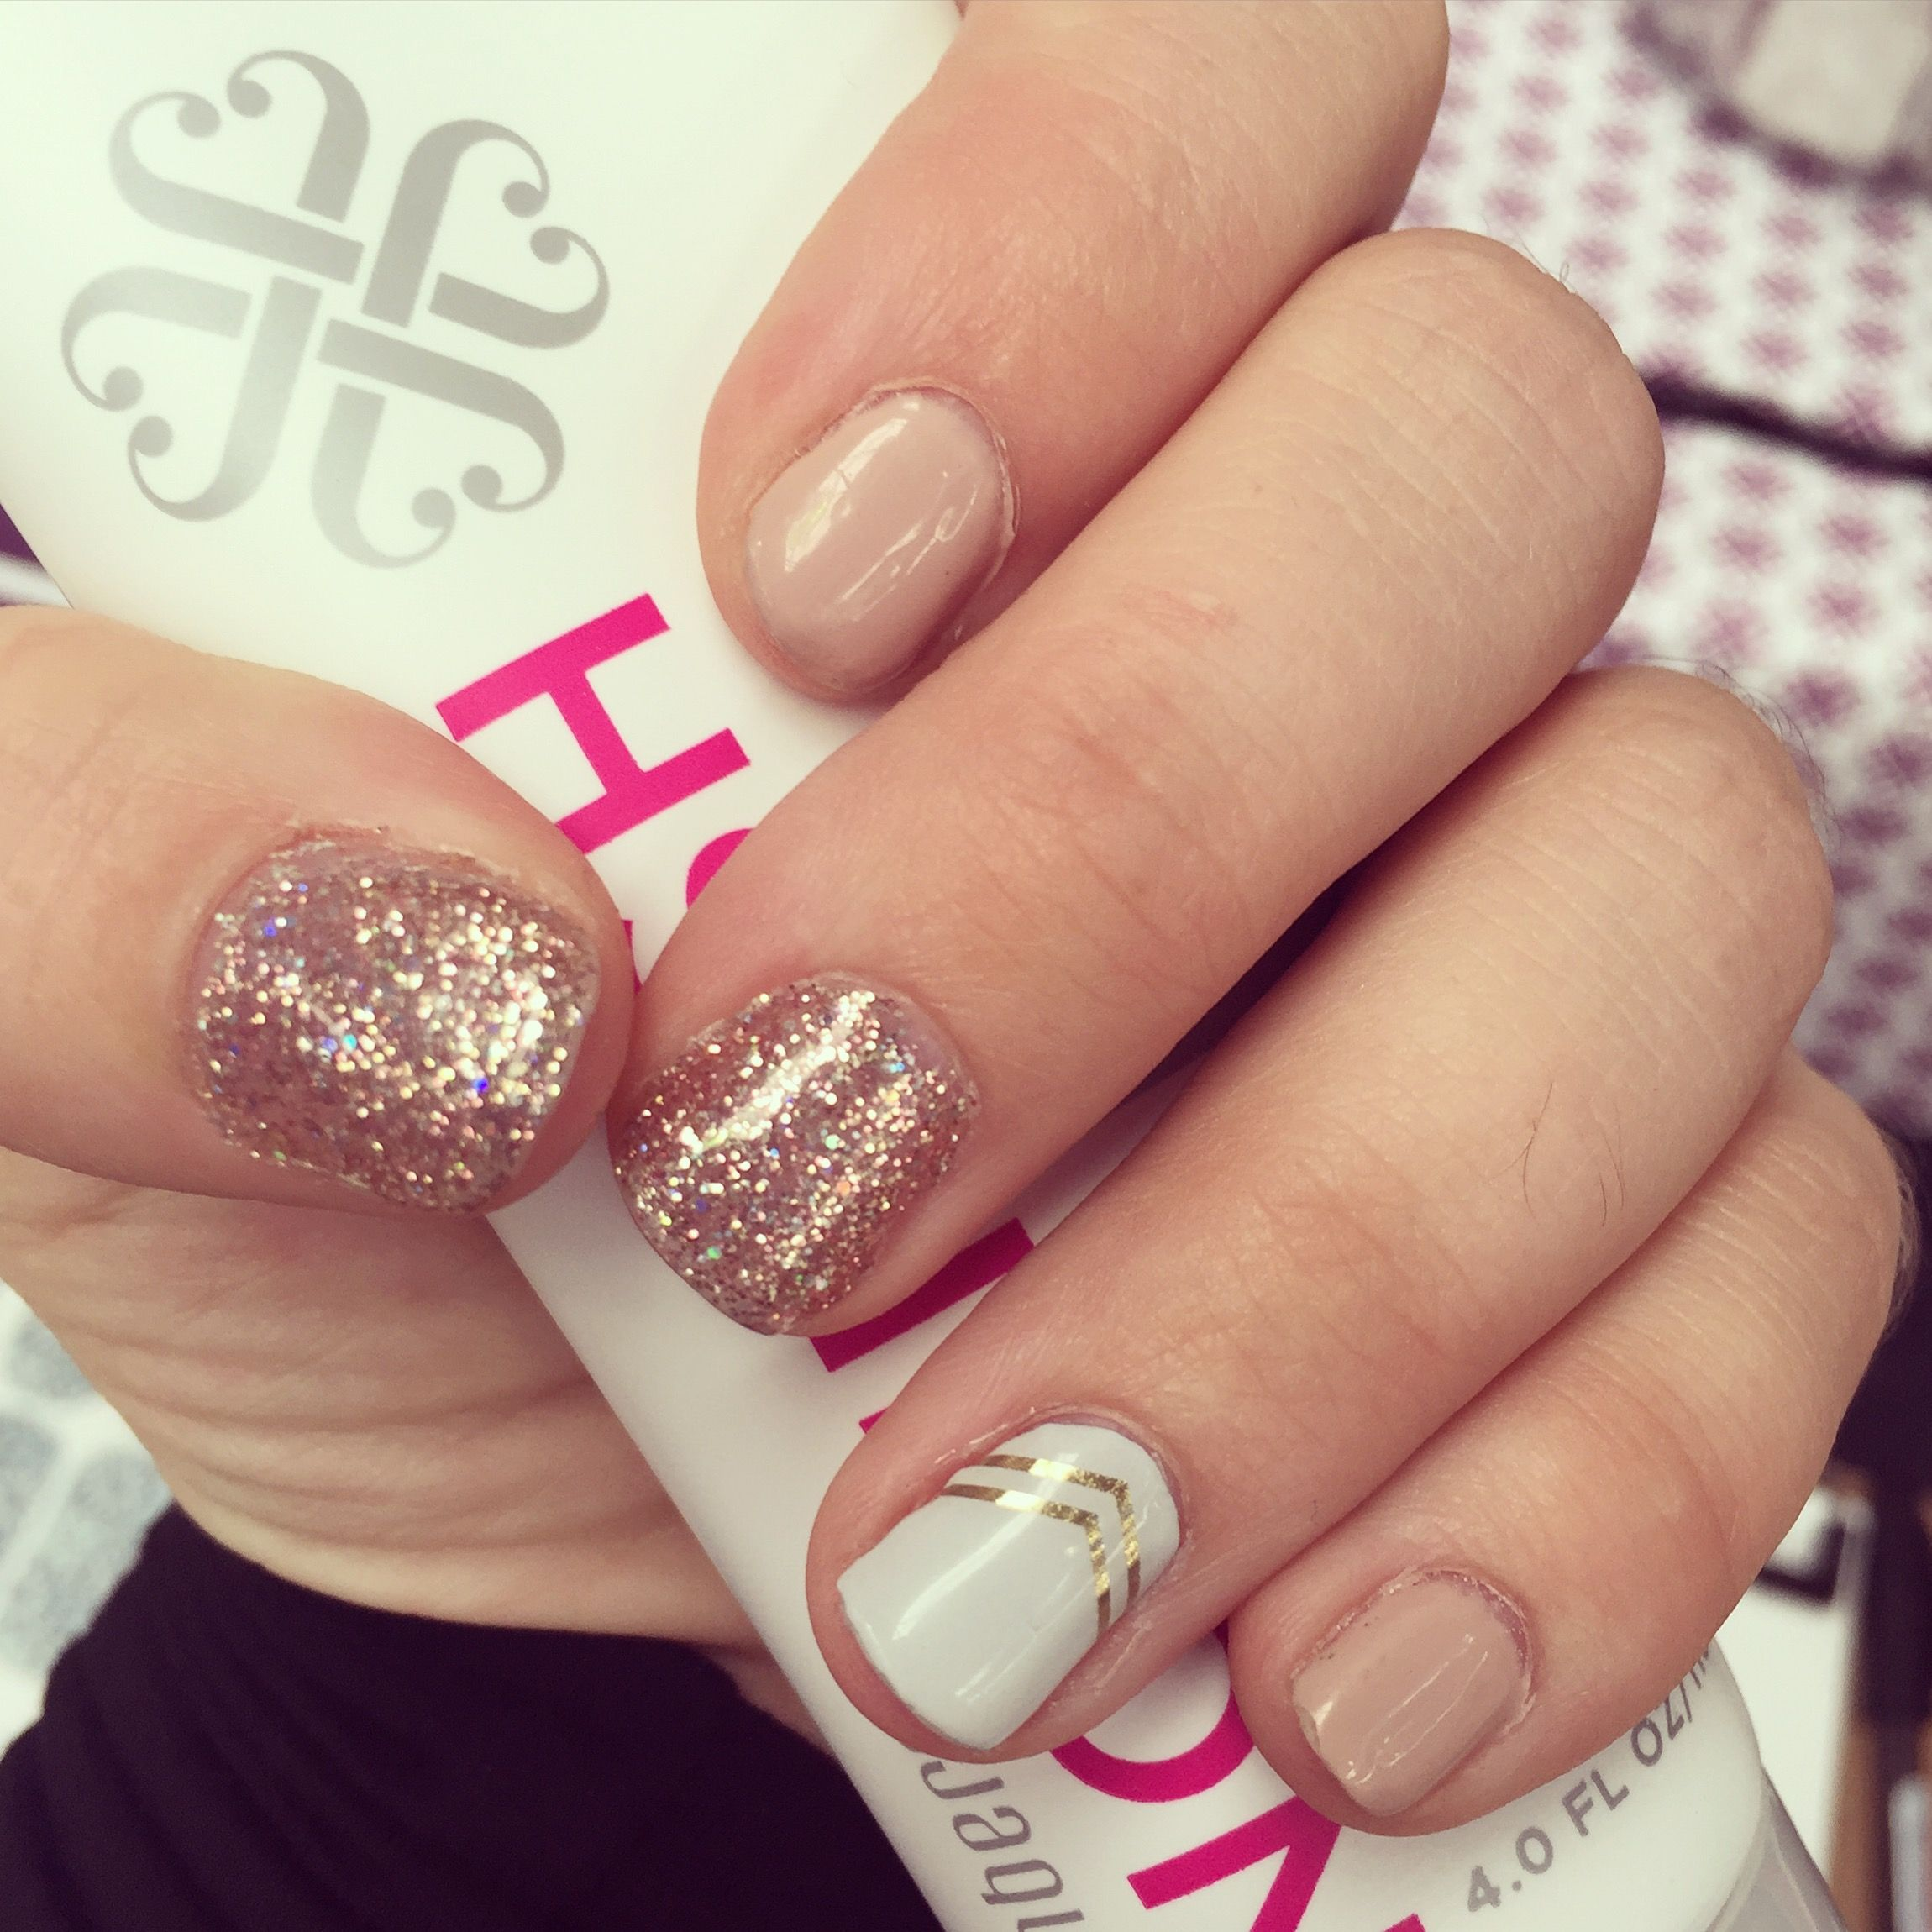 One Of My All Time Faves Gatsby Jamberry Wrap Latte Trushine